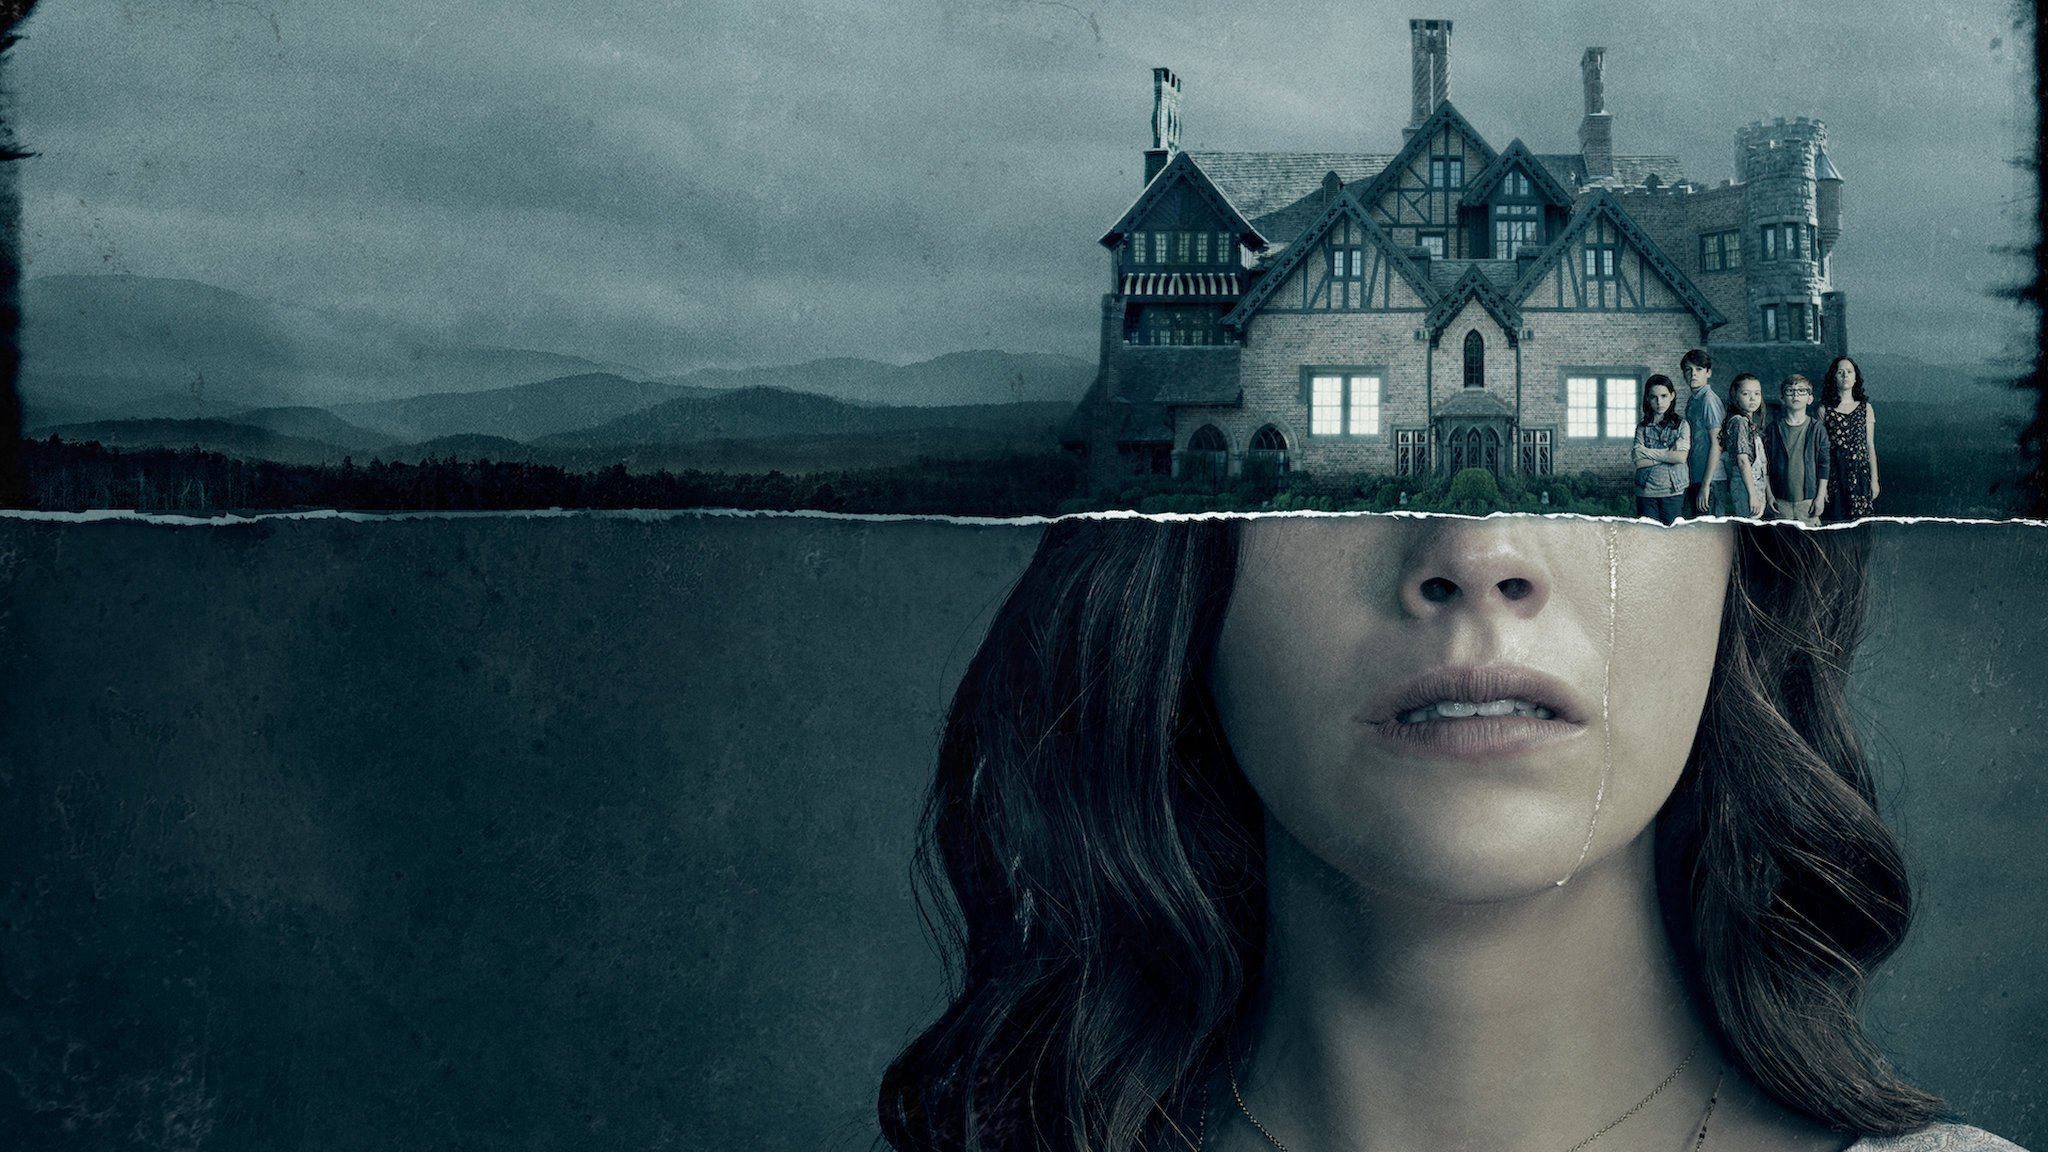 Bannière de la série Netflix The Haunting of Hill House créée par Mike Flanagan